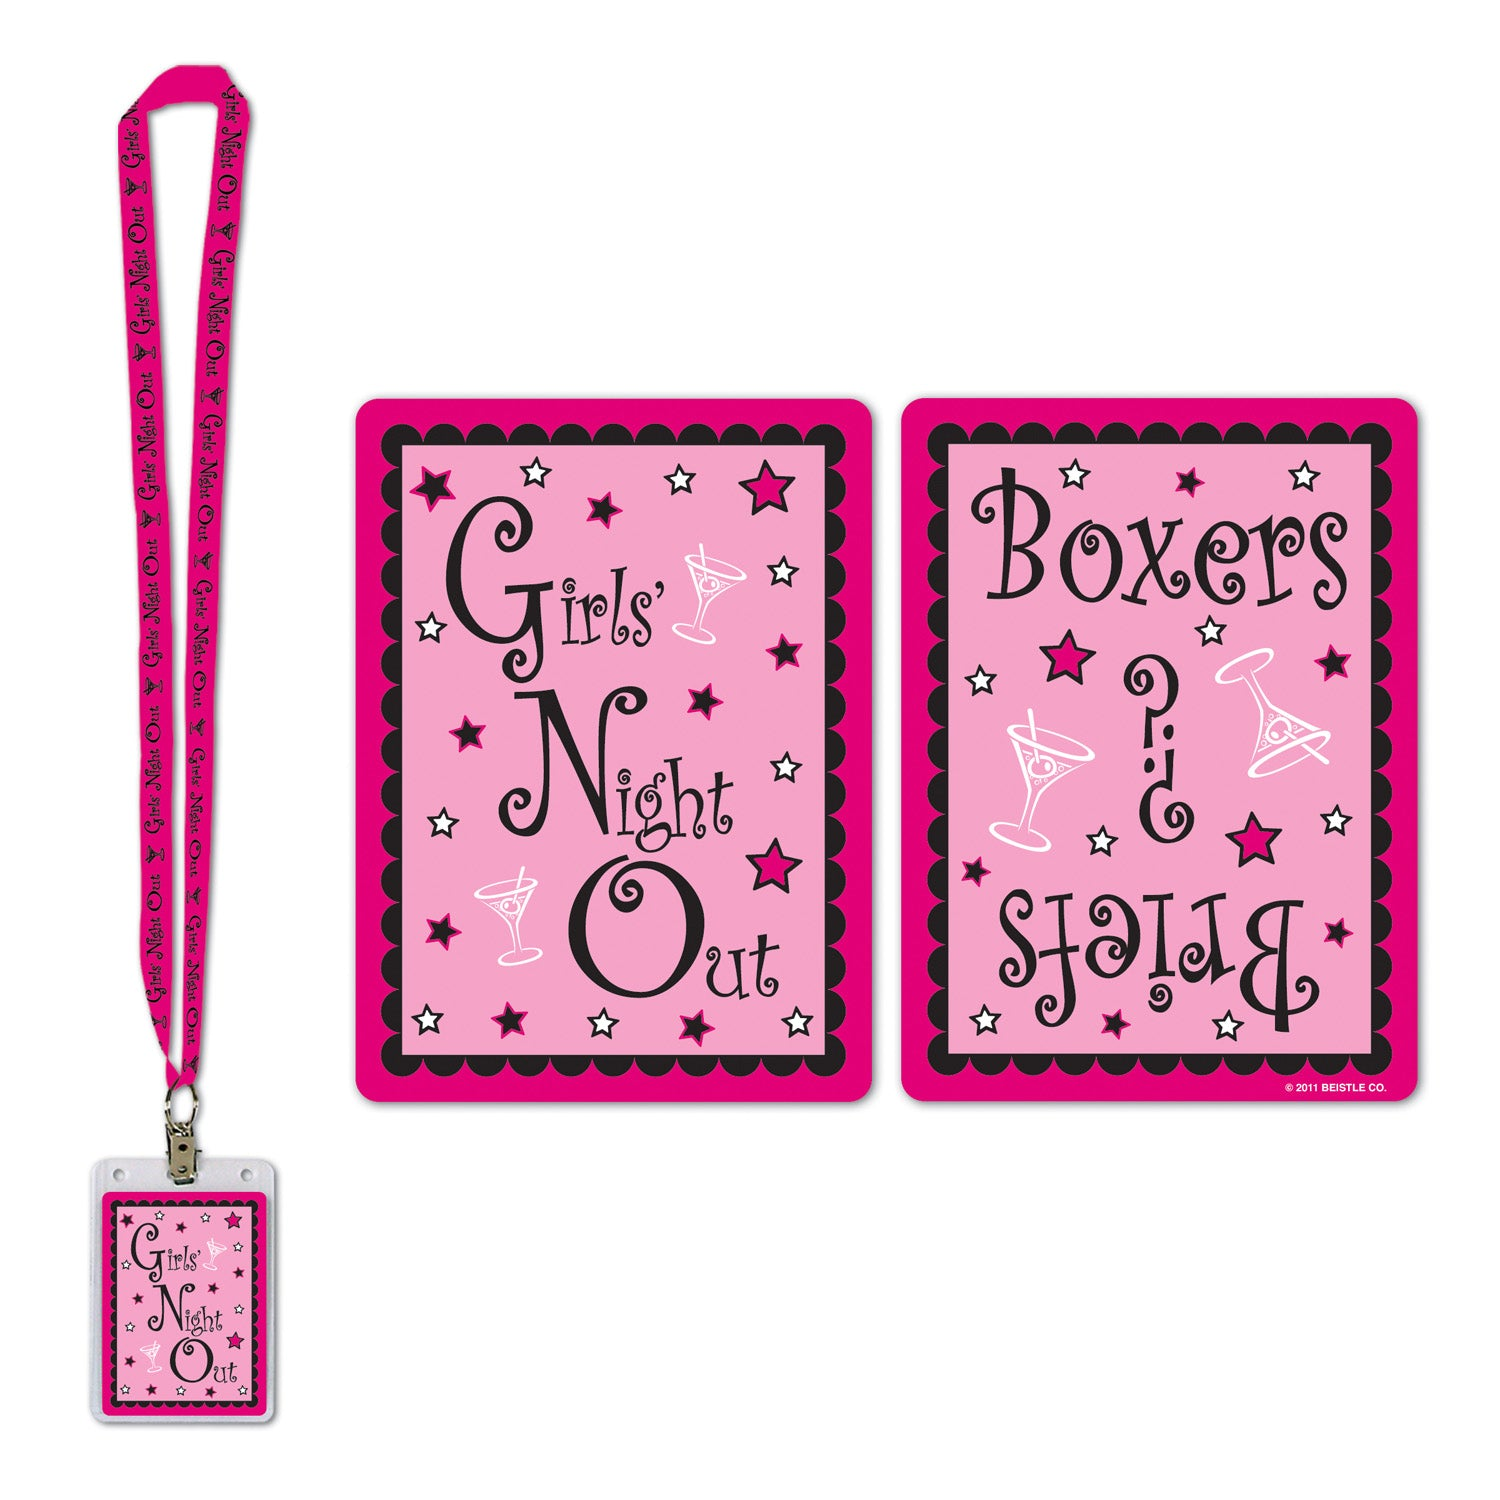 Girls' Night Out Party Pass by Beistle - Bachelorette Theme Decorations